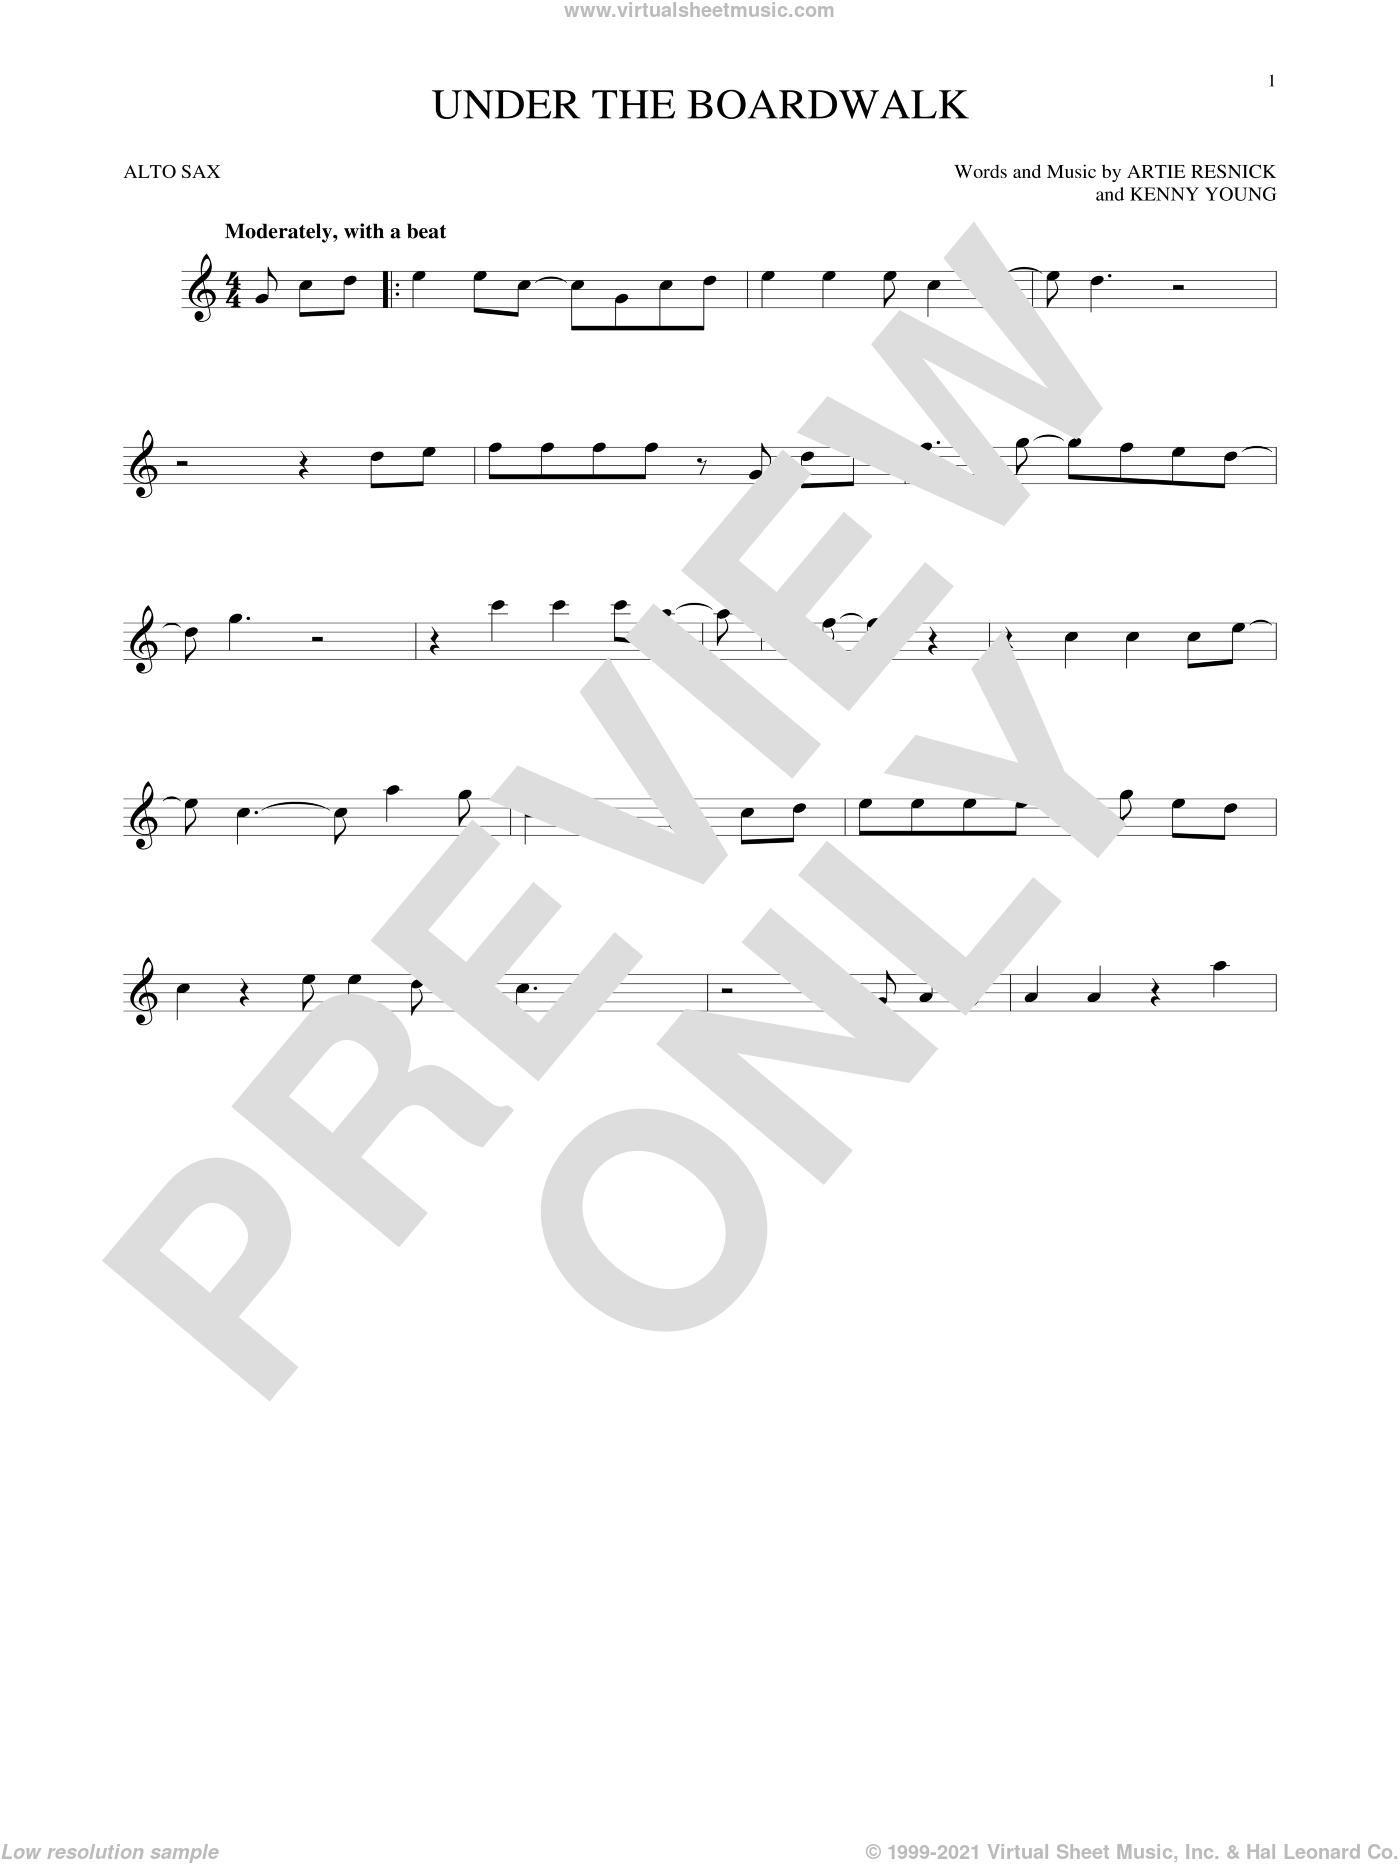 Under The Boardwalk sheet music for alto saxophone solo by The Drifters, intermediate skill level